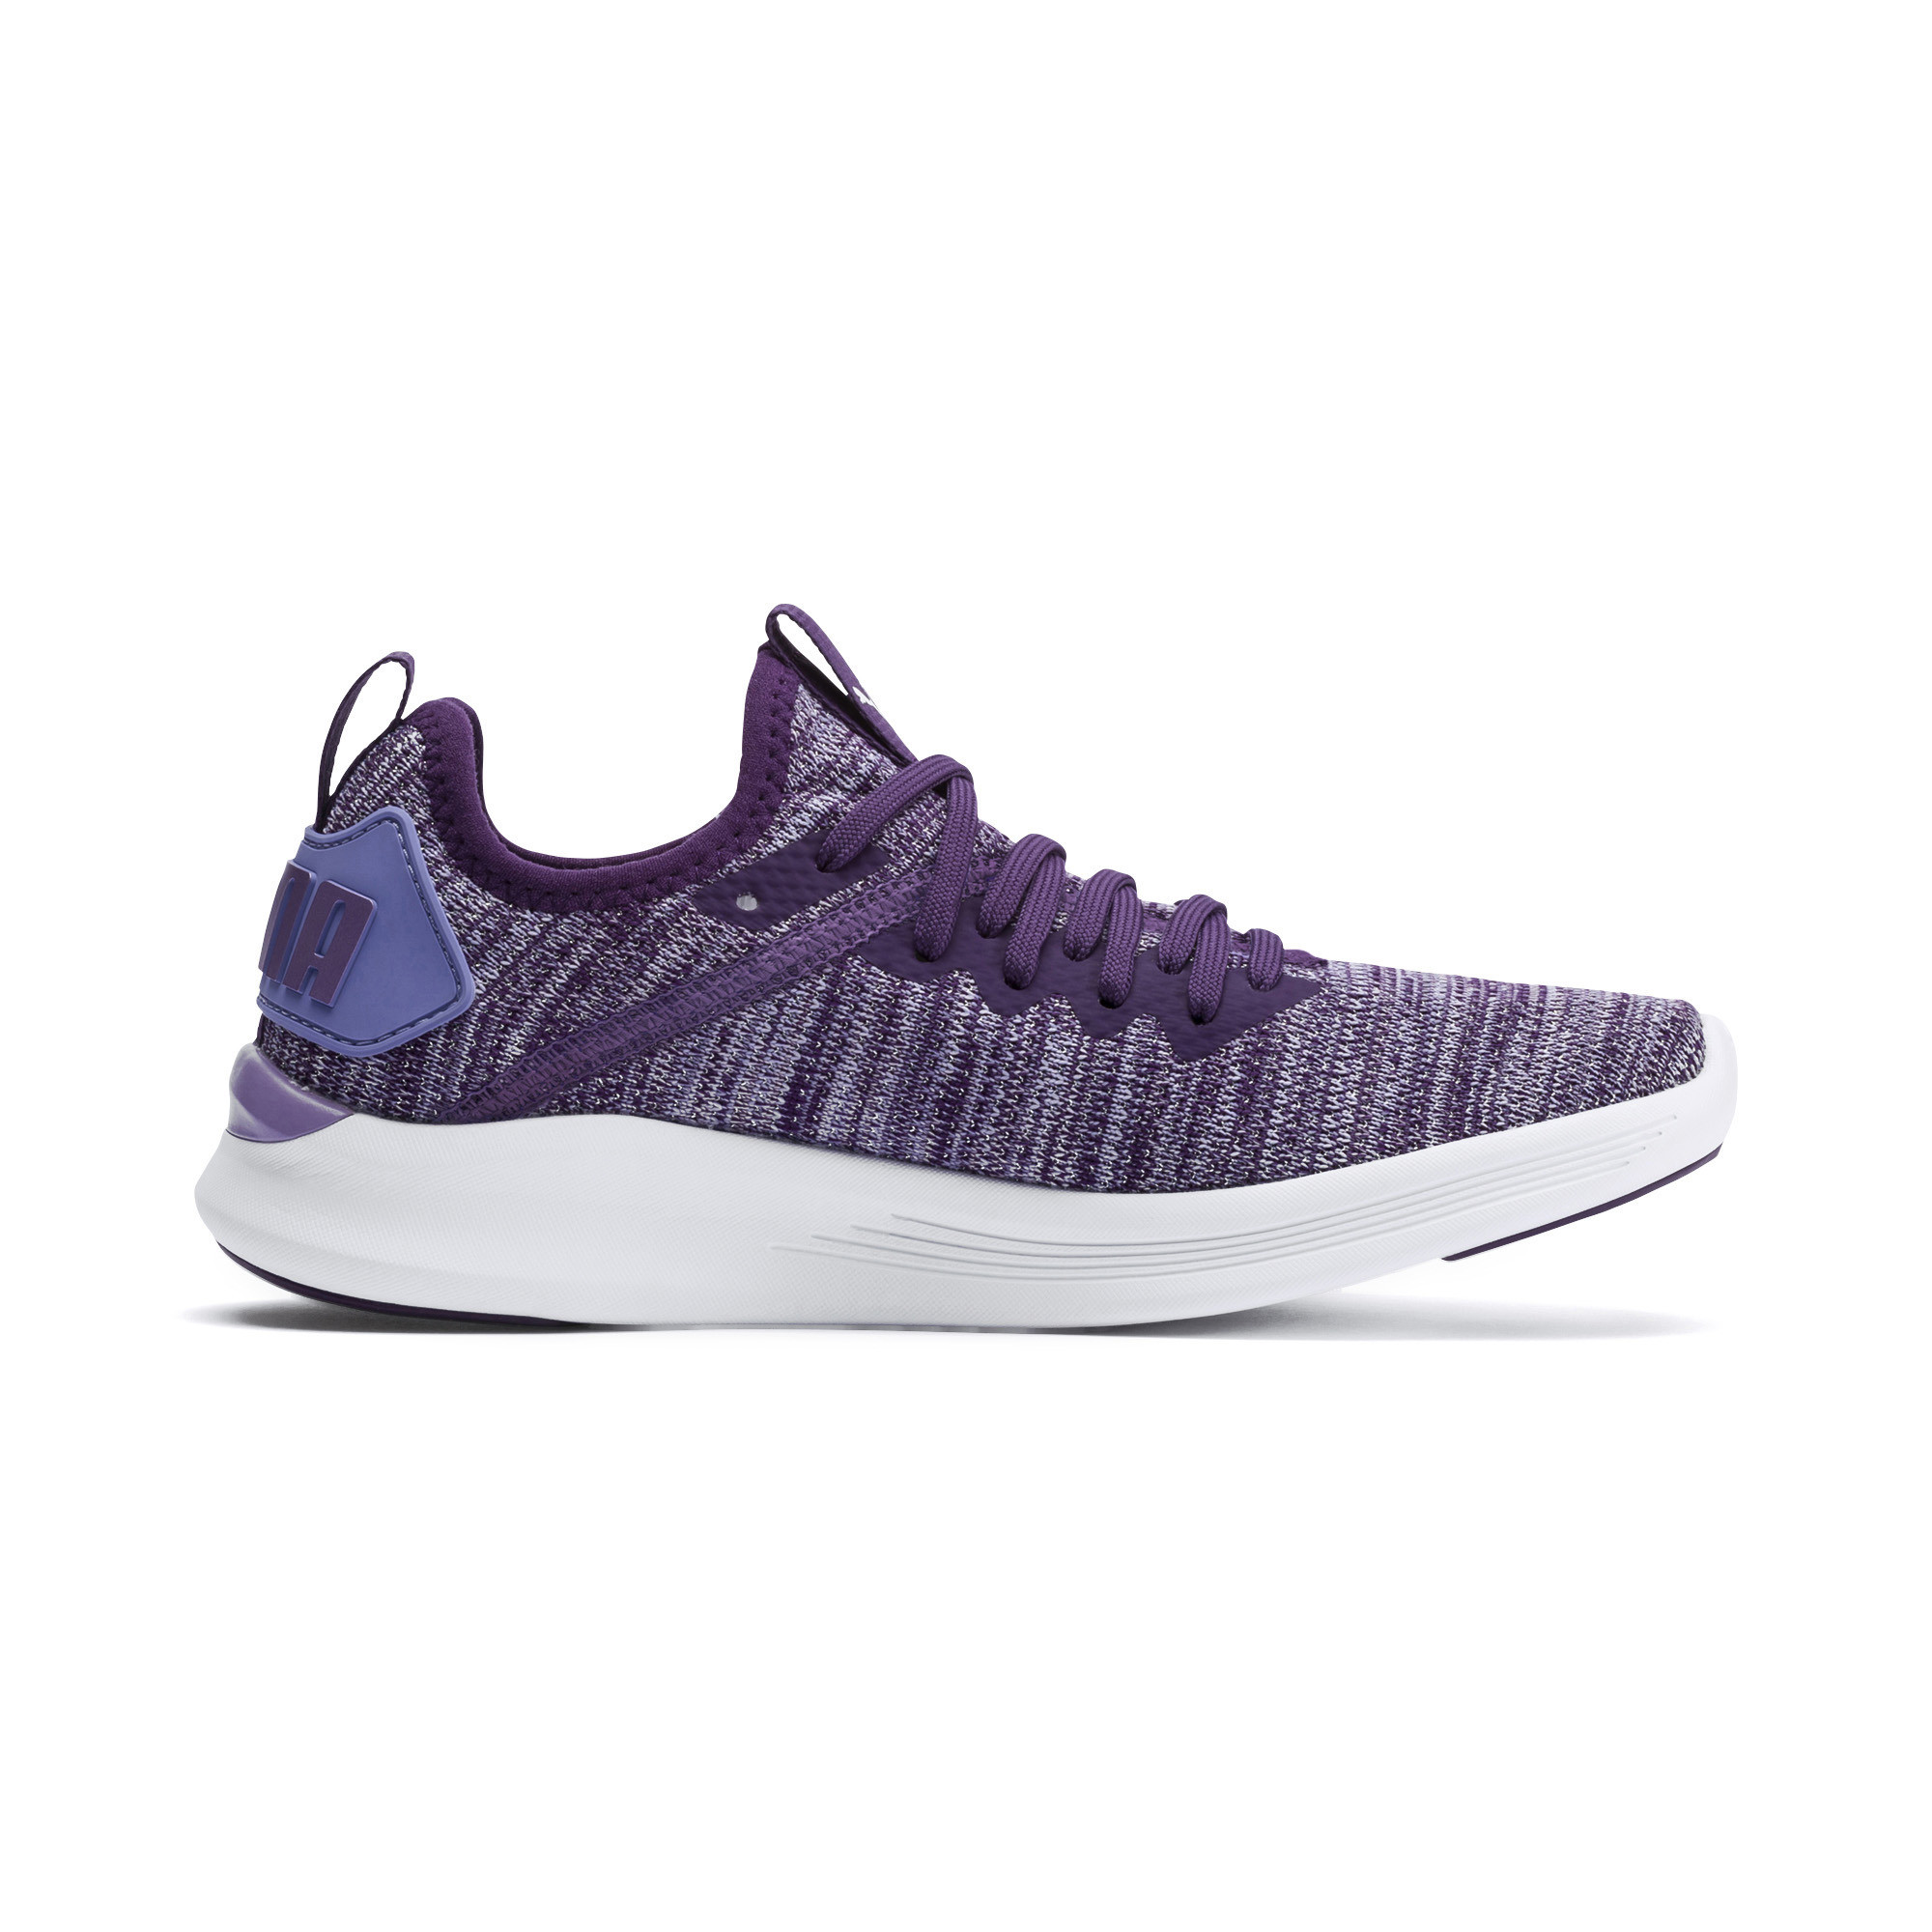 Image Puma IGNITE Flash evoKNIT Metallic Girls' Sneakers #5